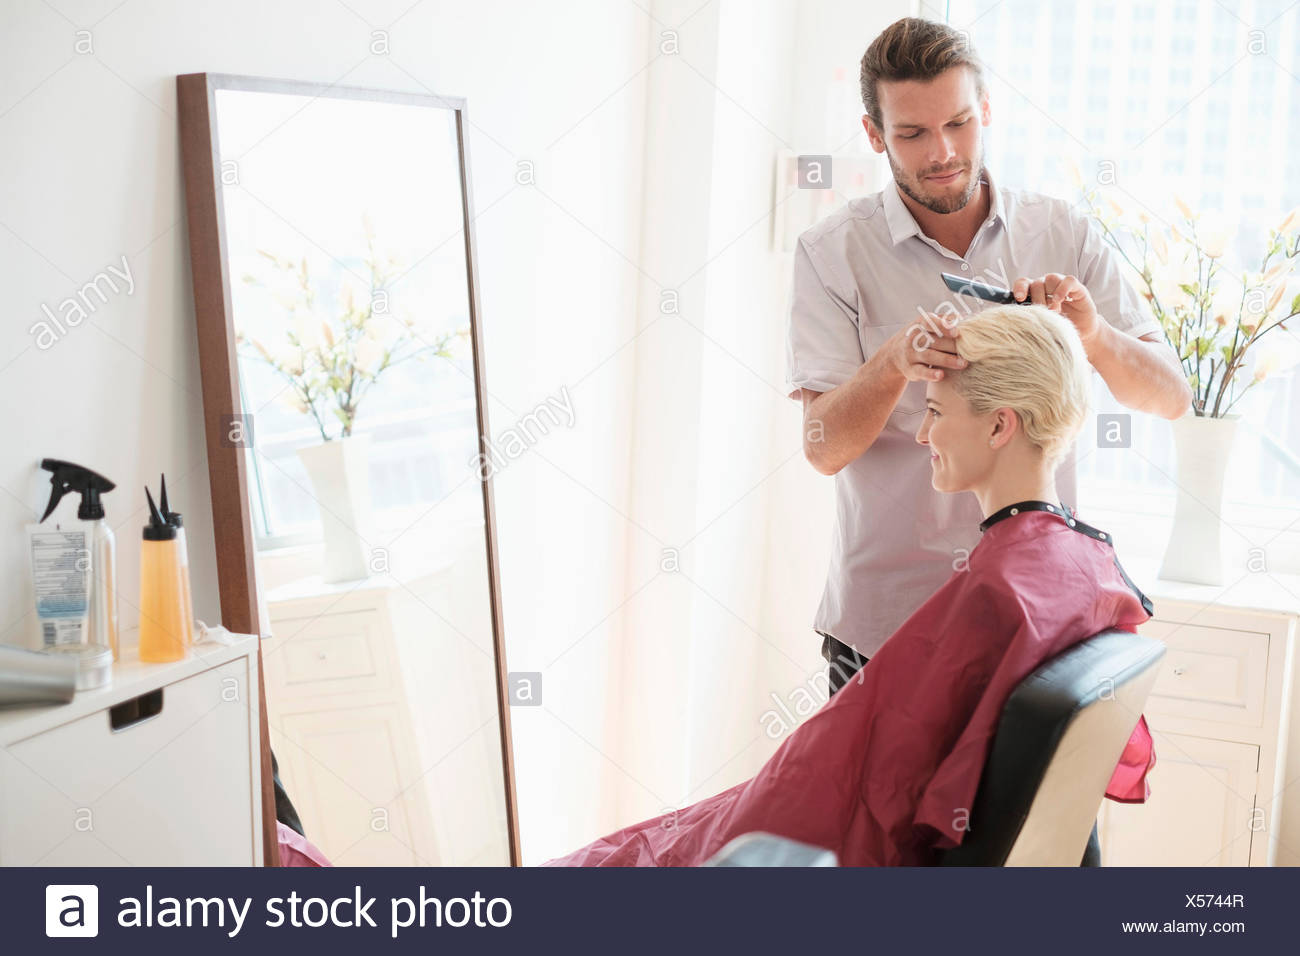 Hairdresser combing woman's hair - Stock Image